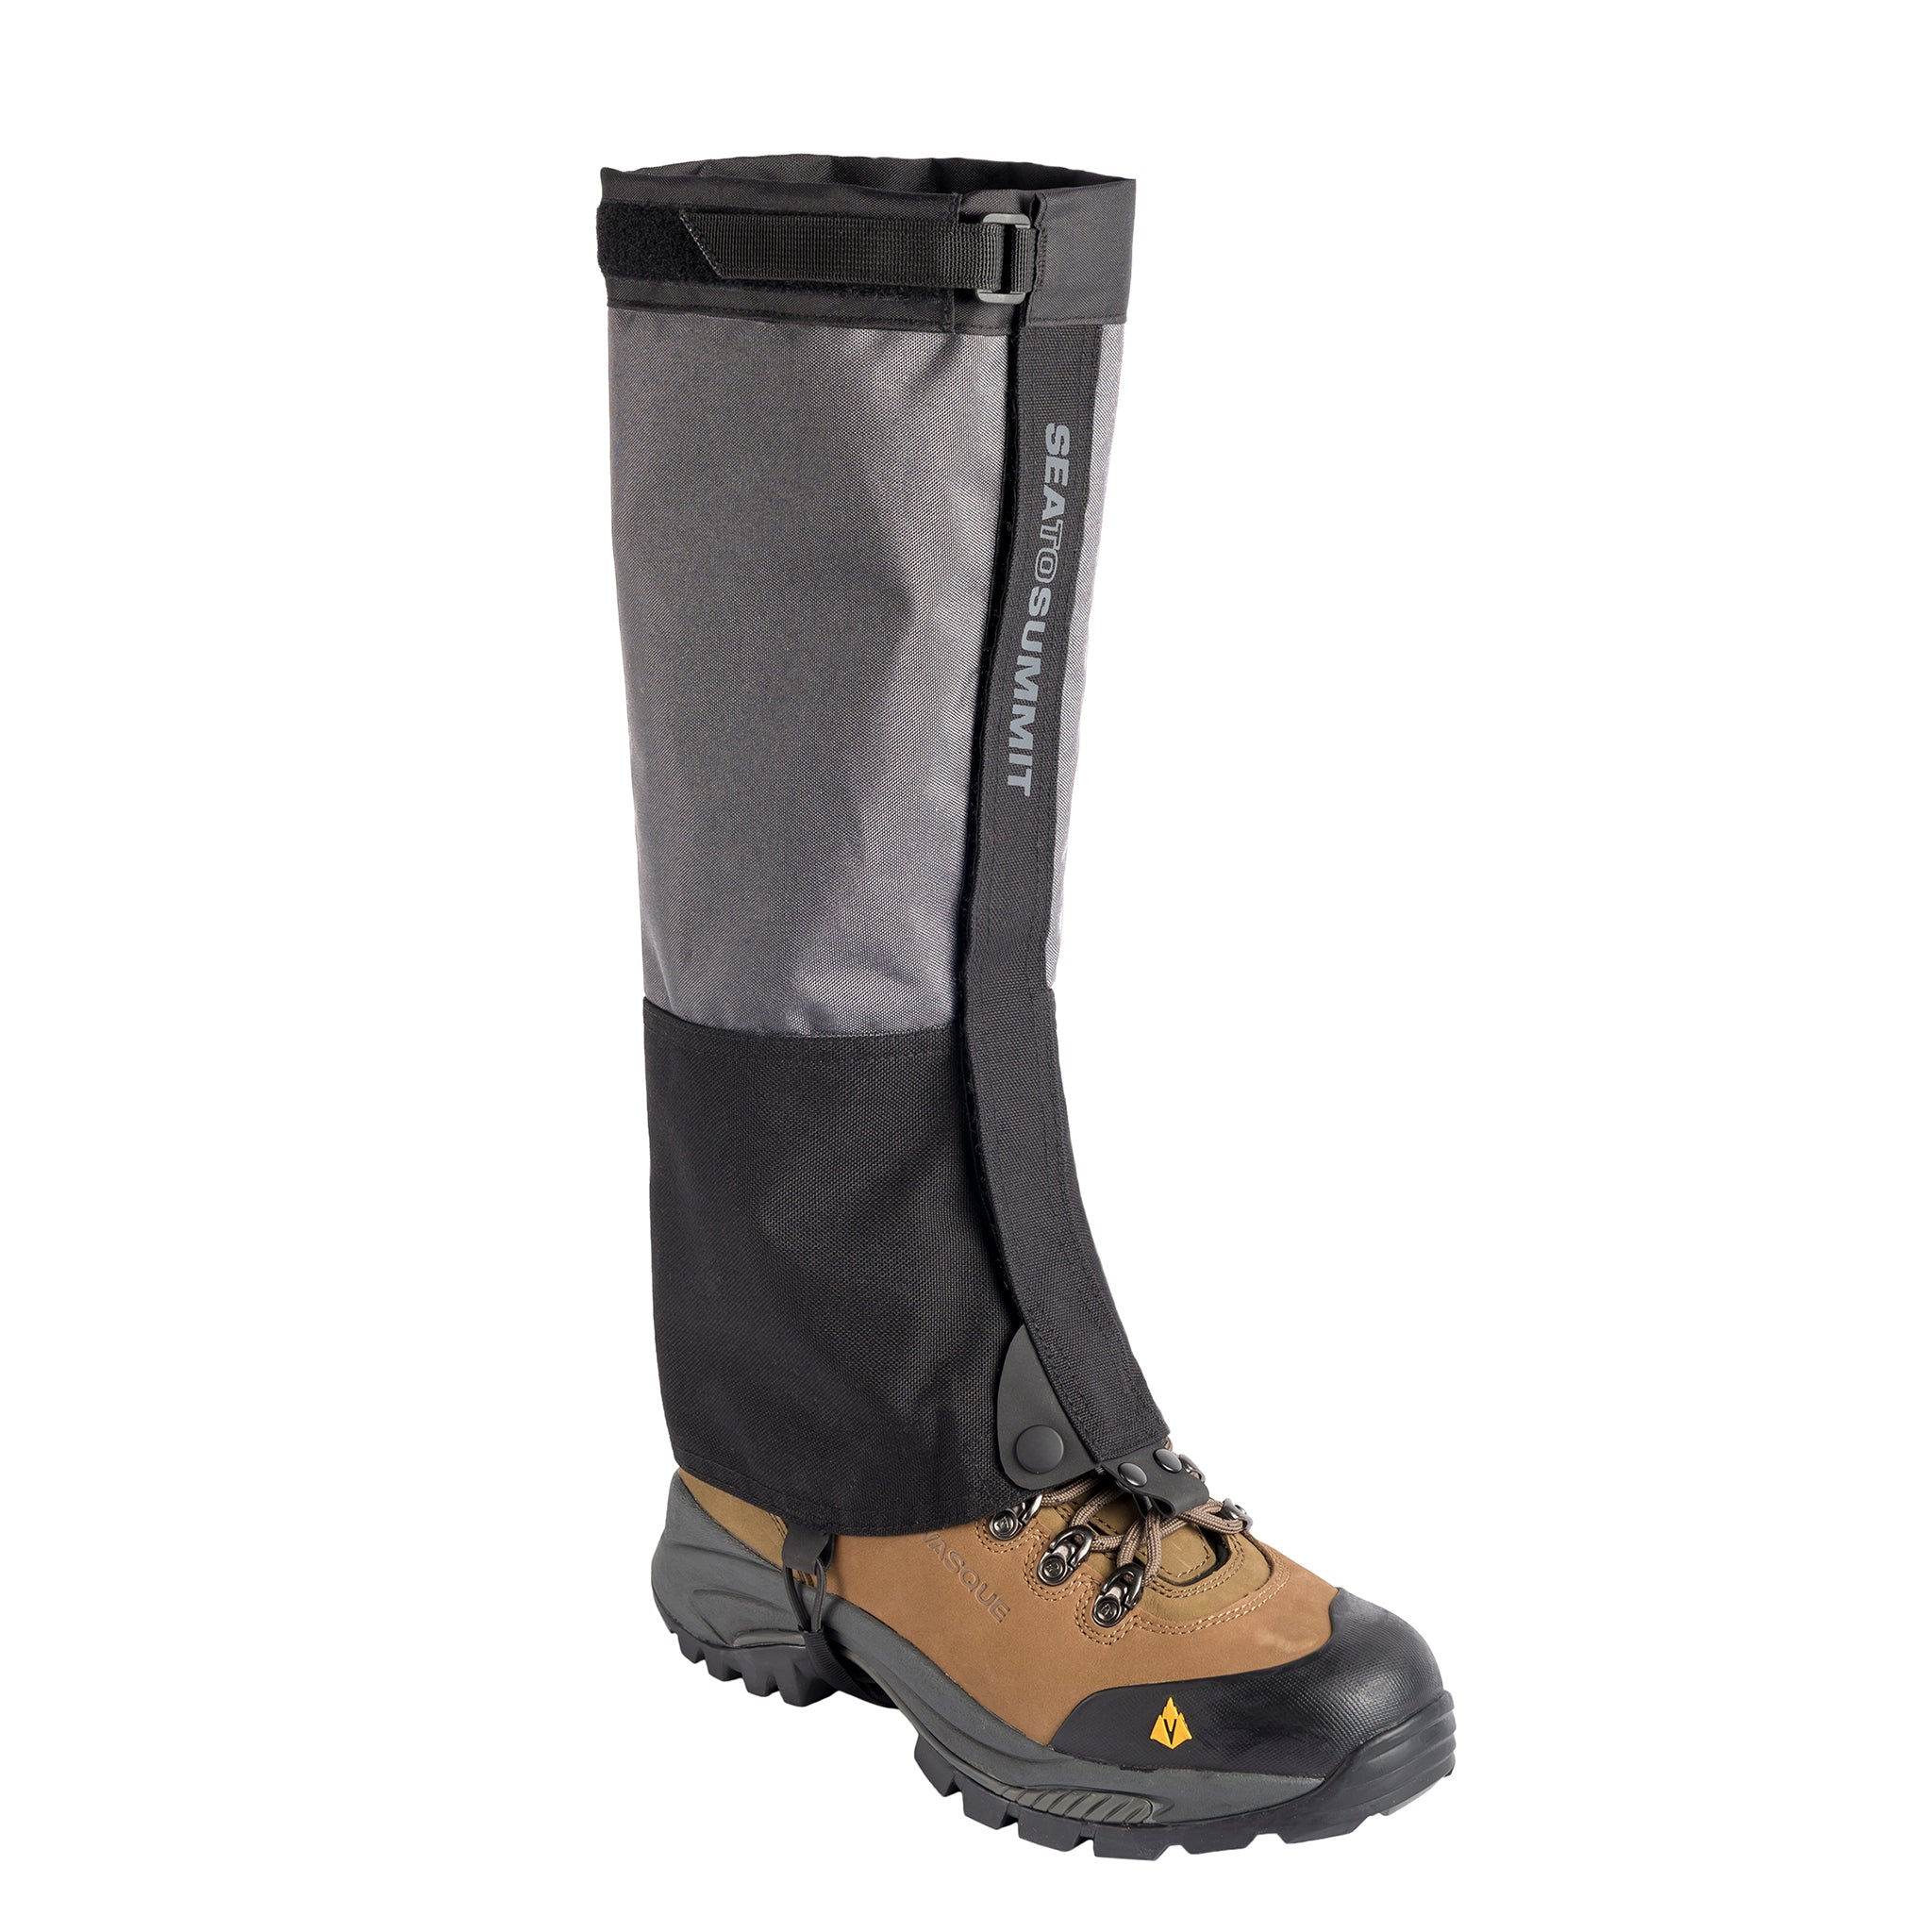 Overland value hiking gaiter